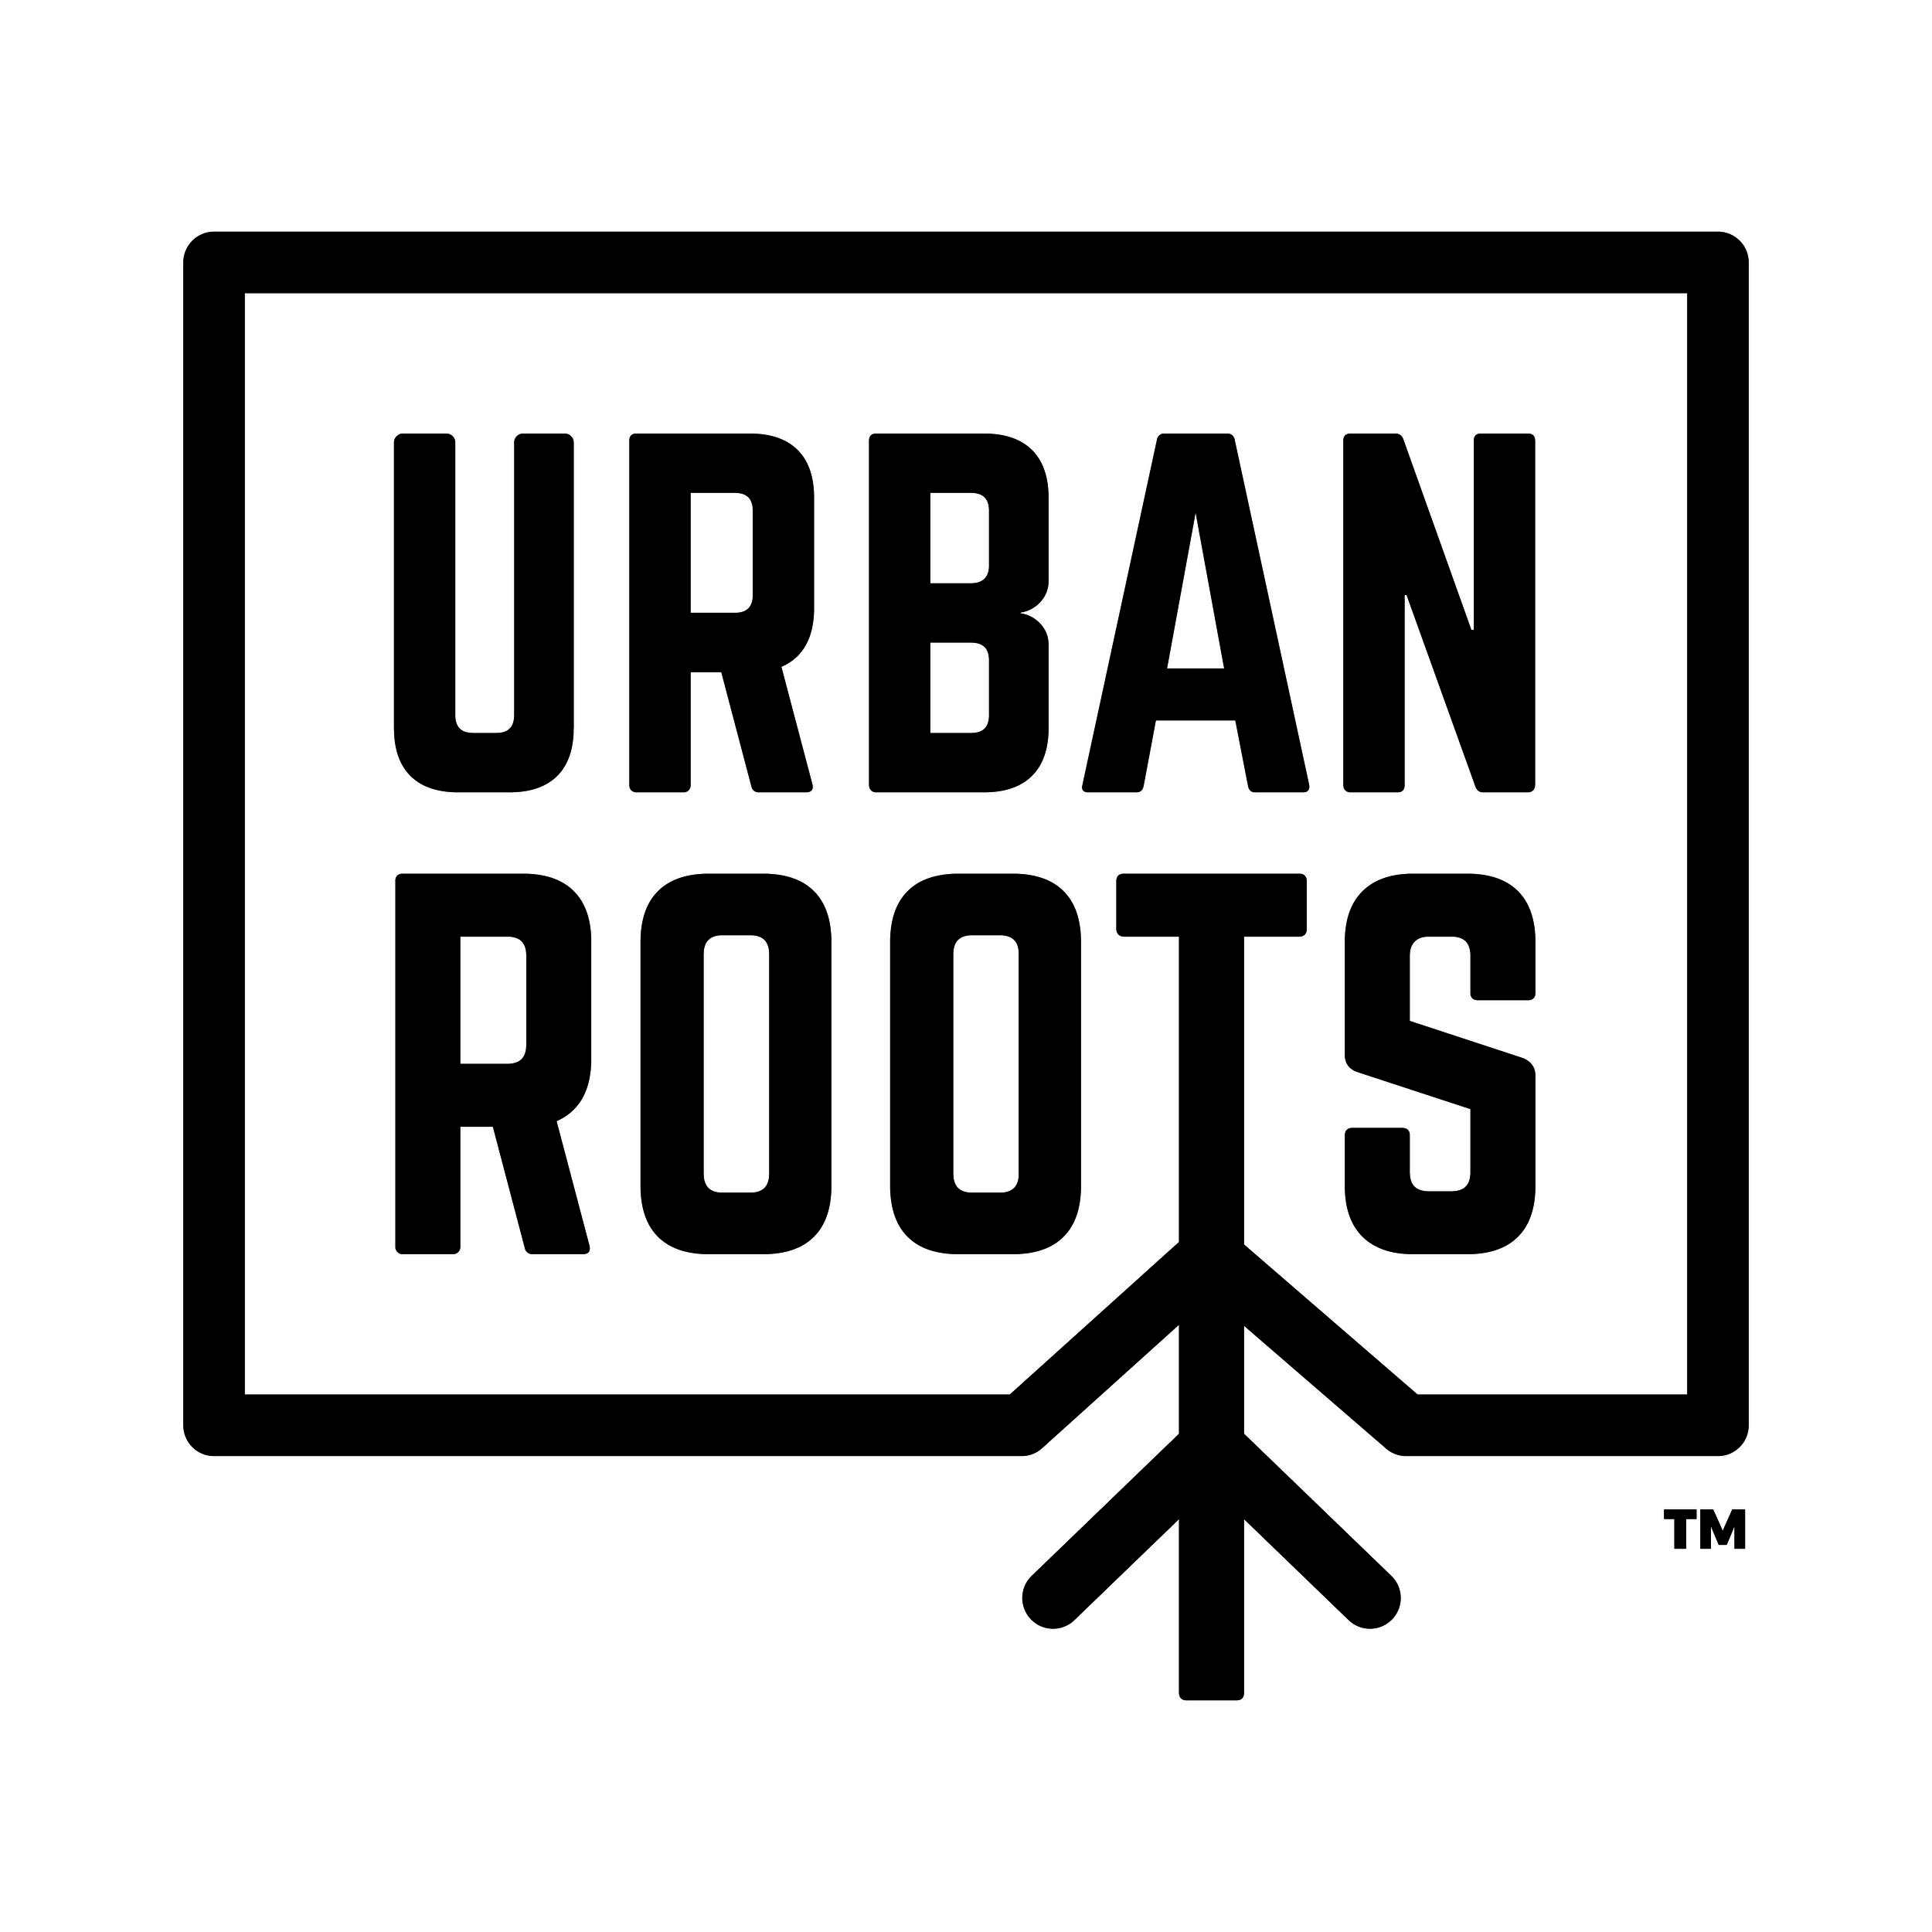 Urban Roots - Get 20% off your entire purchase at URBAN ROOTS within 1-hour of your MLFA workout! Just show the cashier your workout confirmation email & it's a done deal!